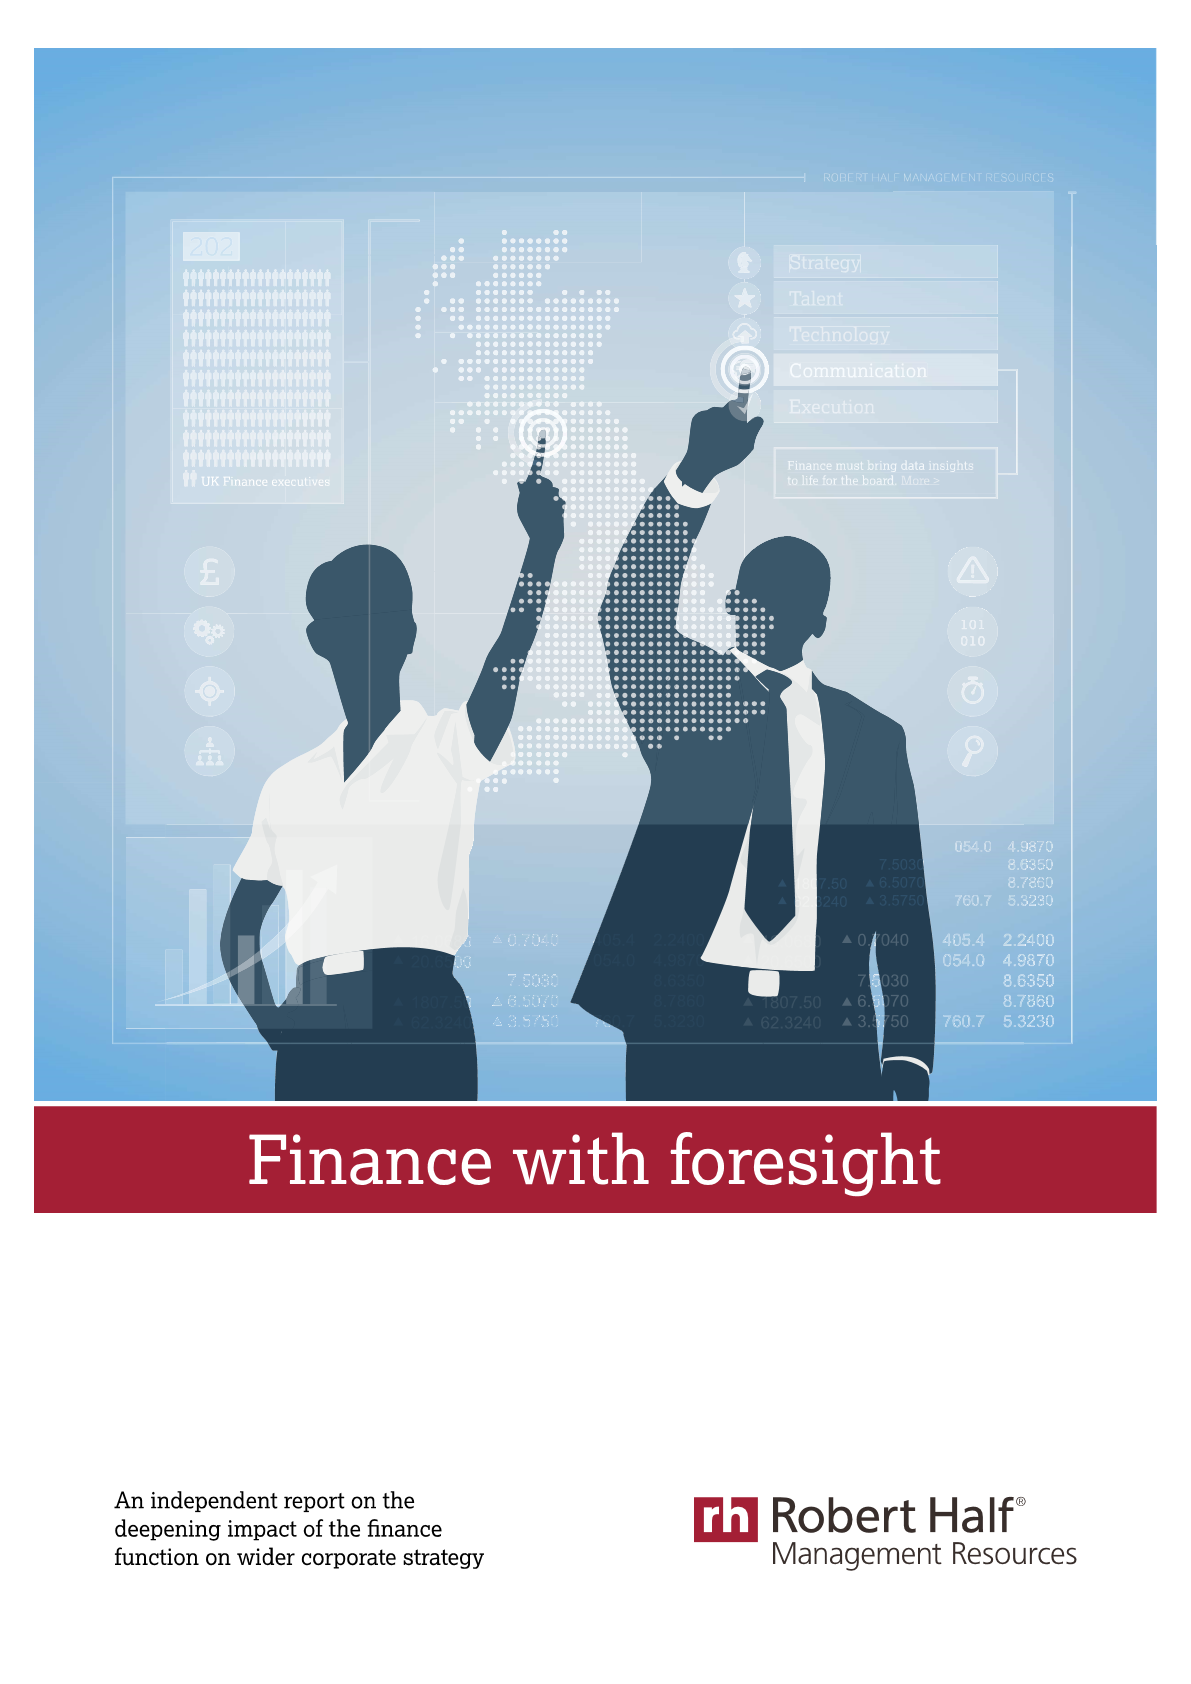 Finance with foresight